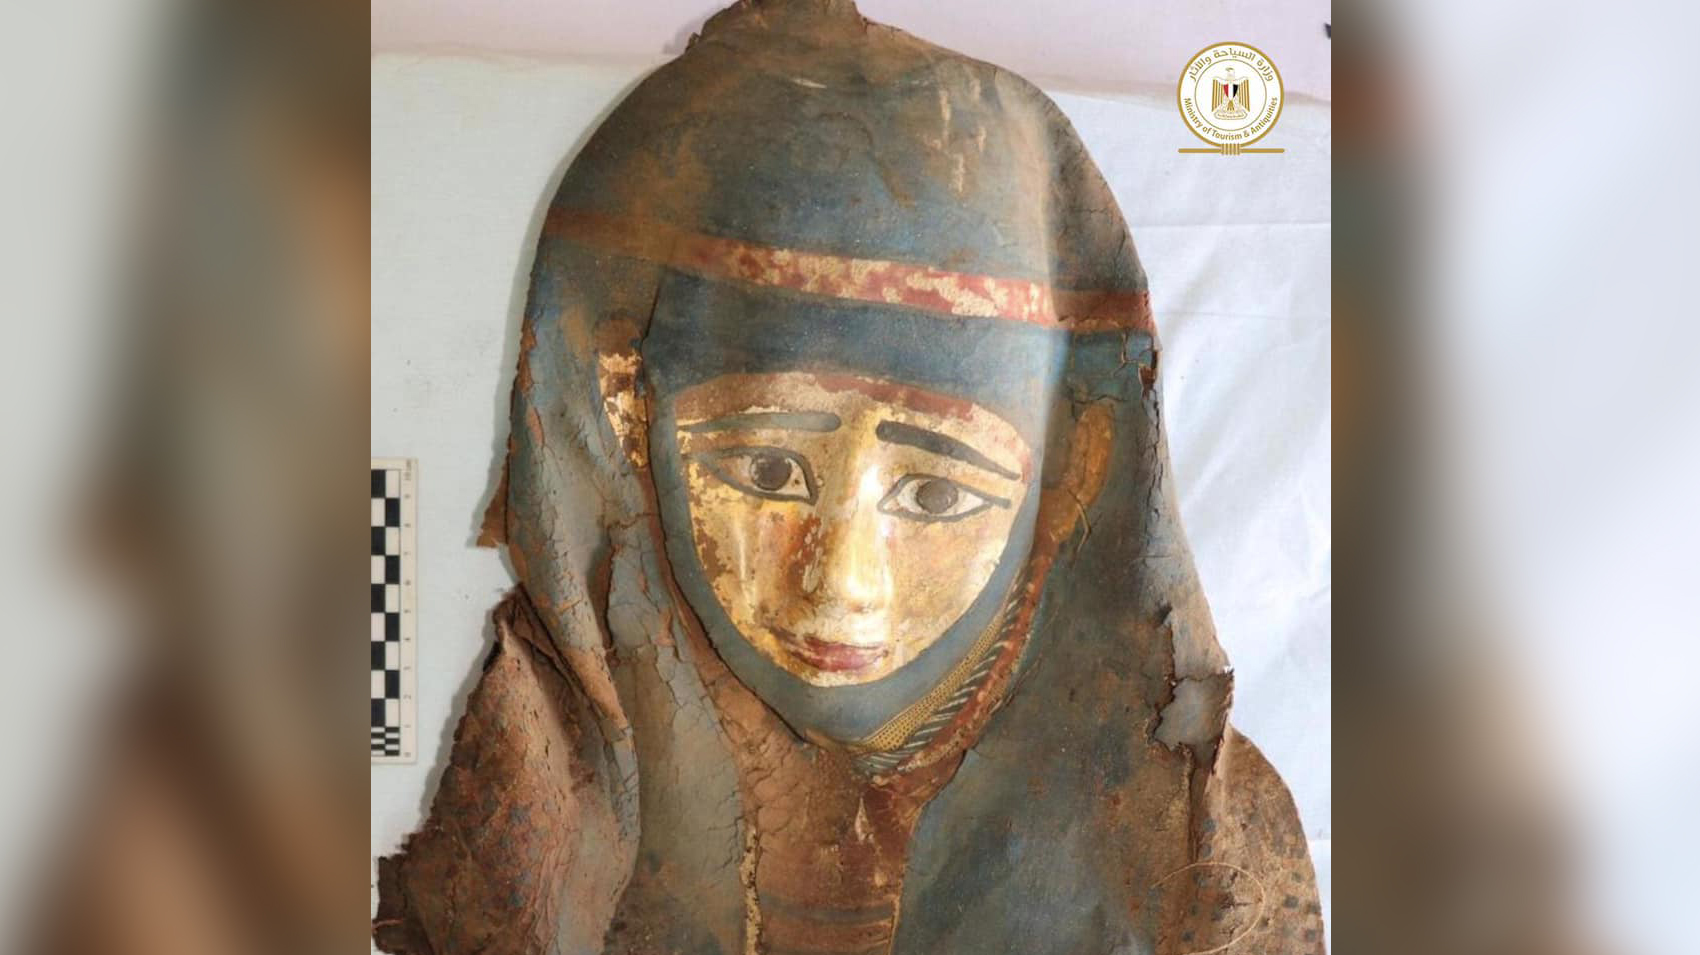 A mummy mask worn by the deceased is seen here.